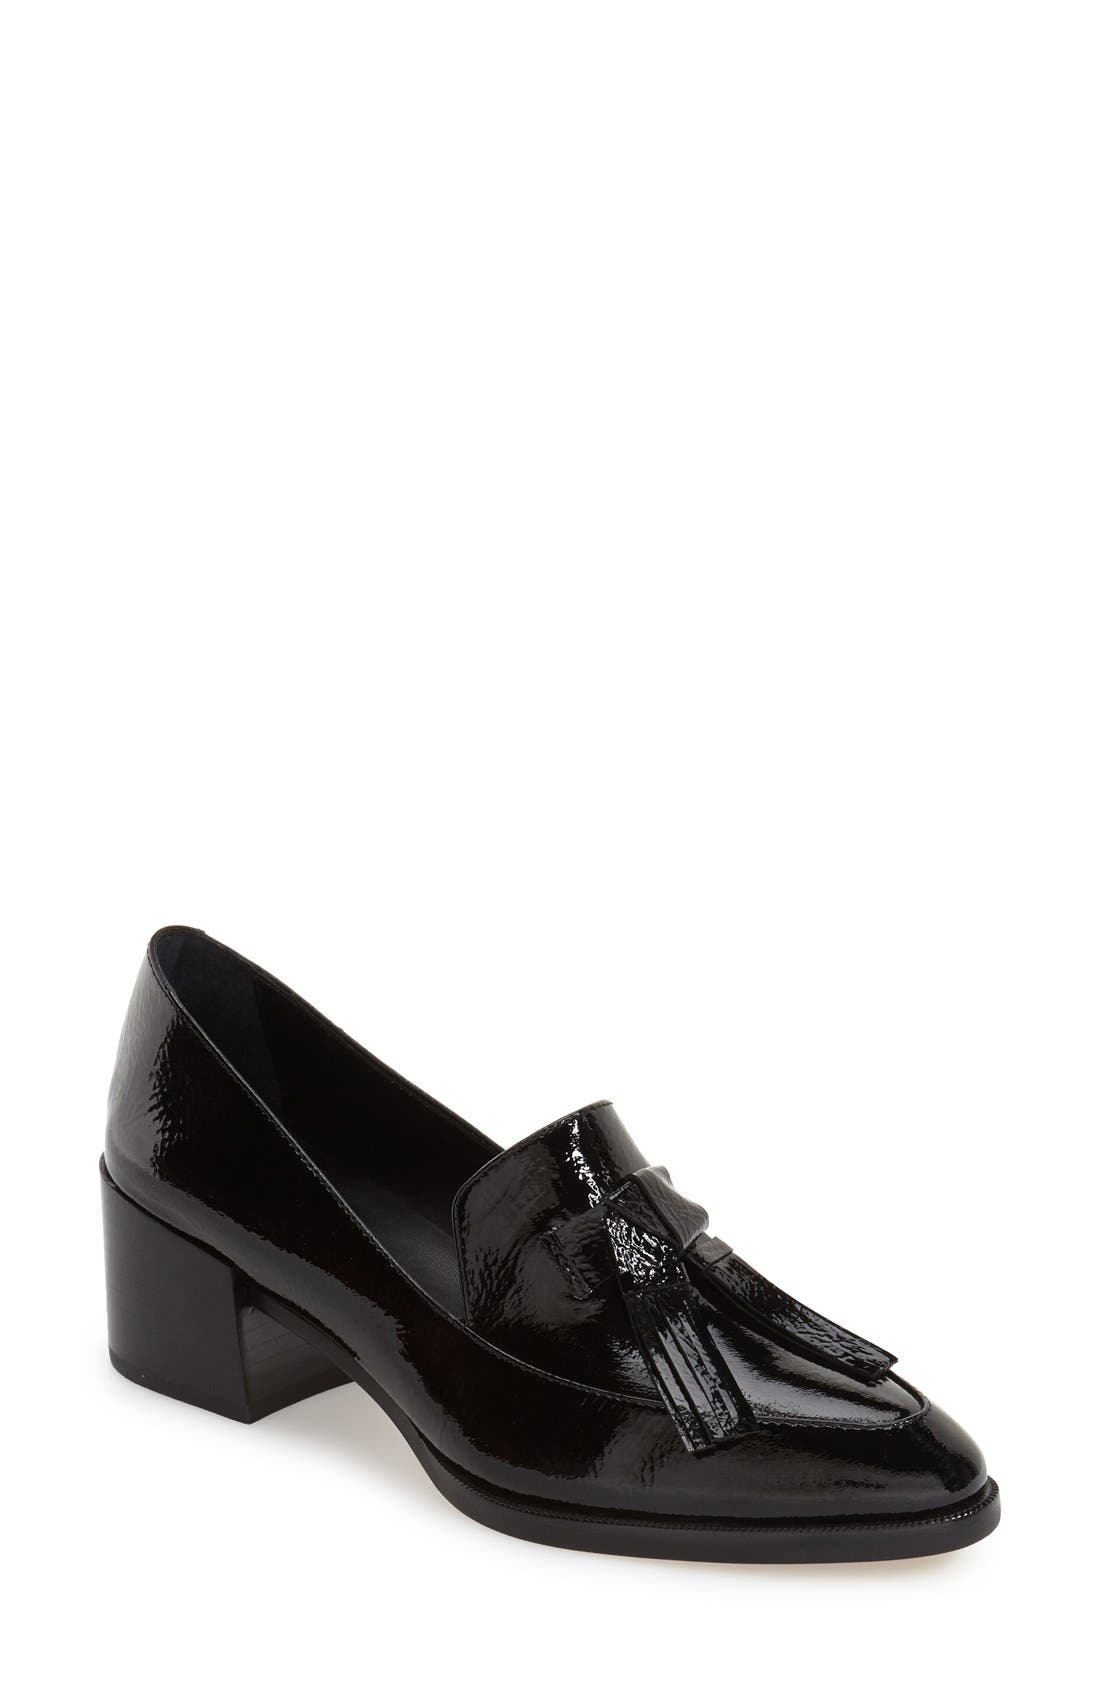 'Edie' Loafer,                         Main,                         color, 001